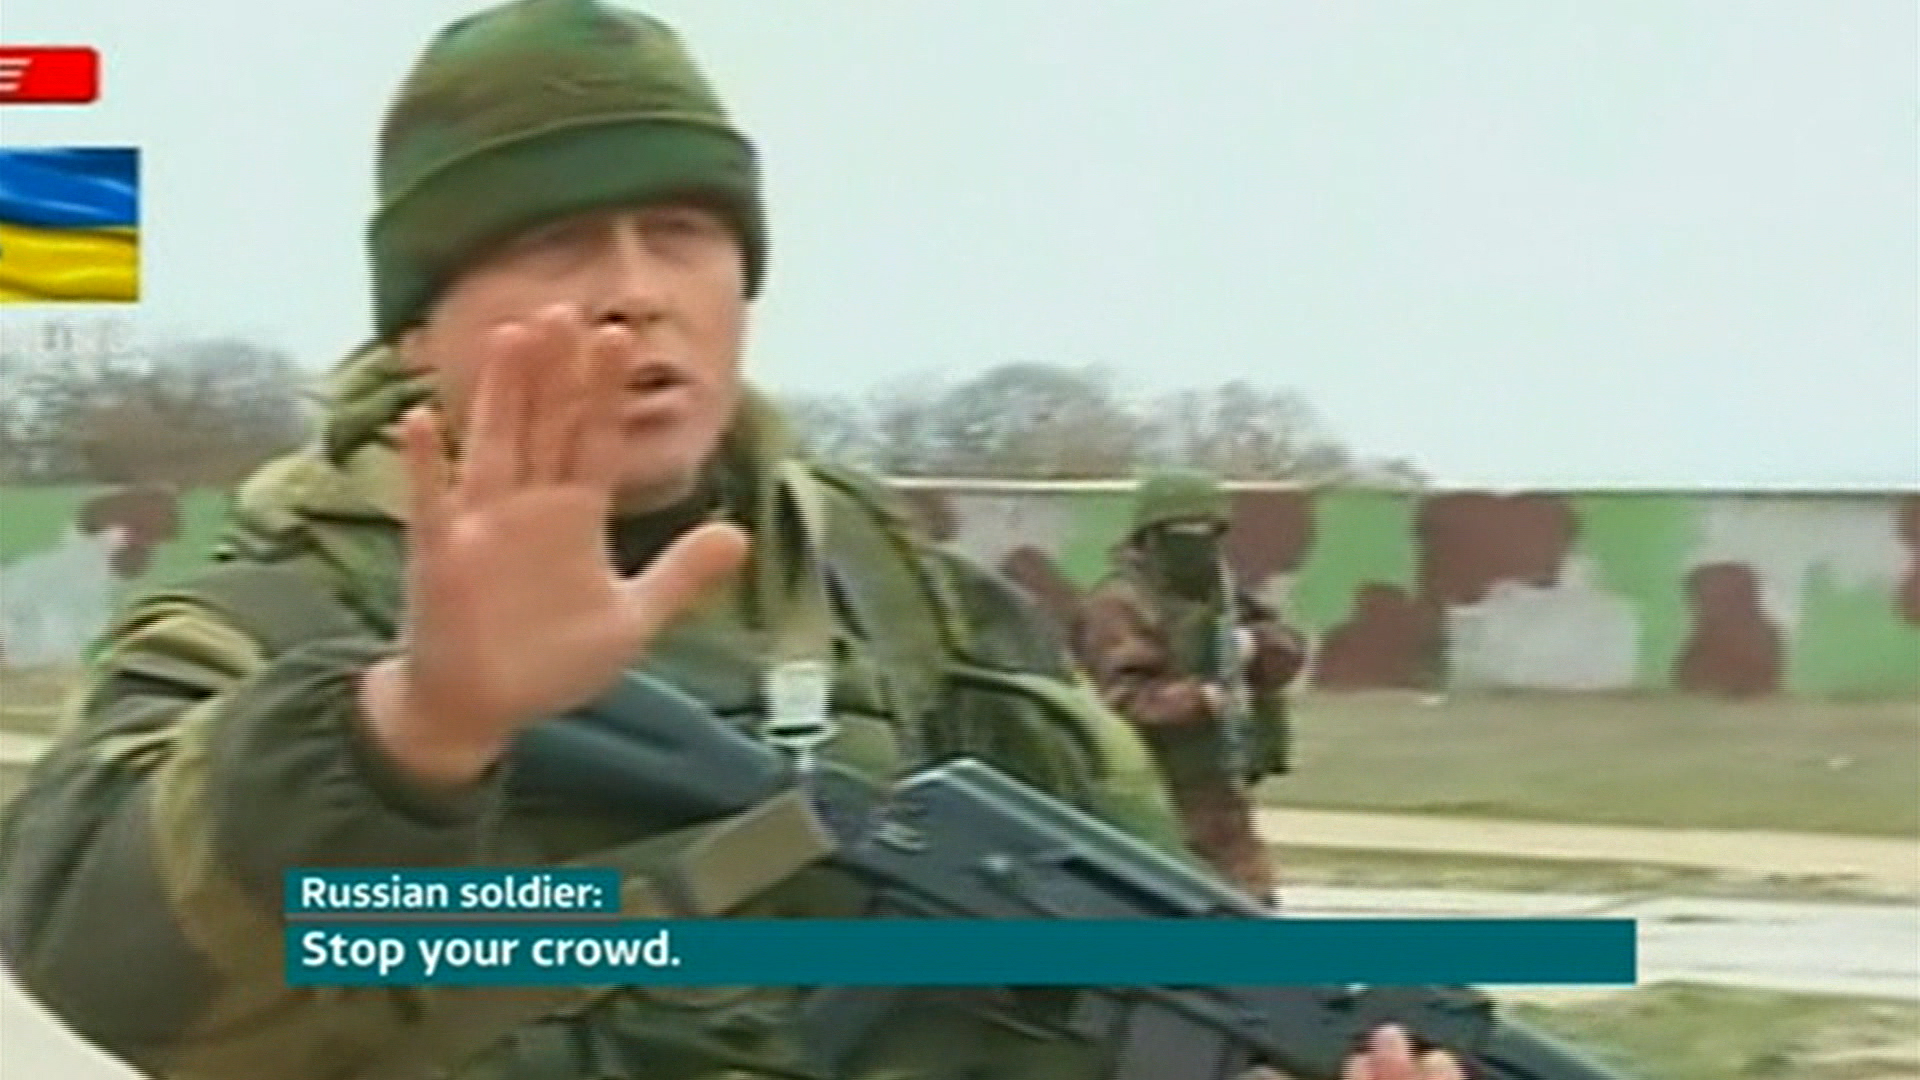 Shots ring out over Crimea